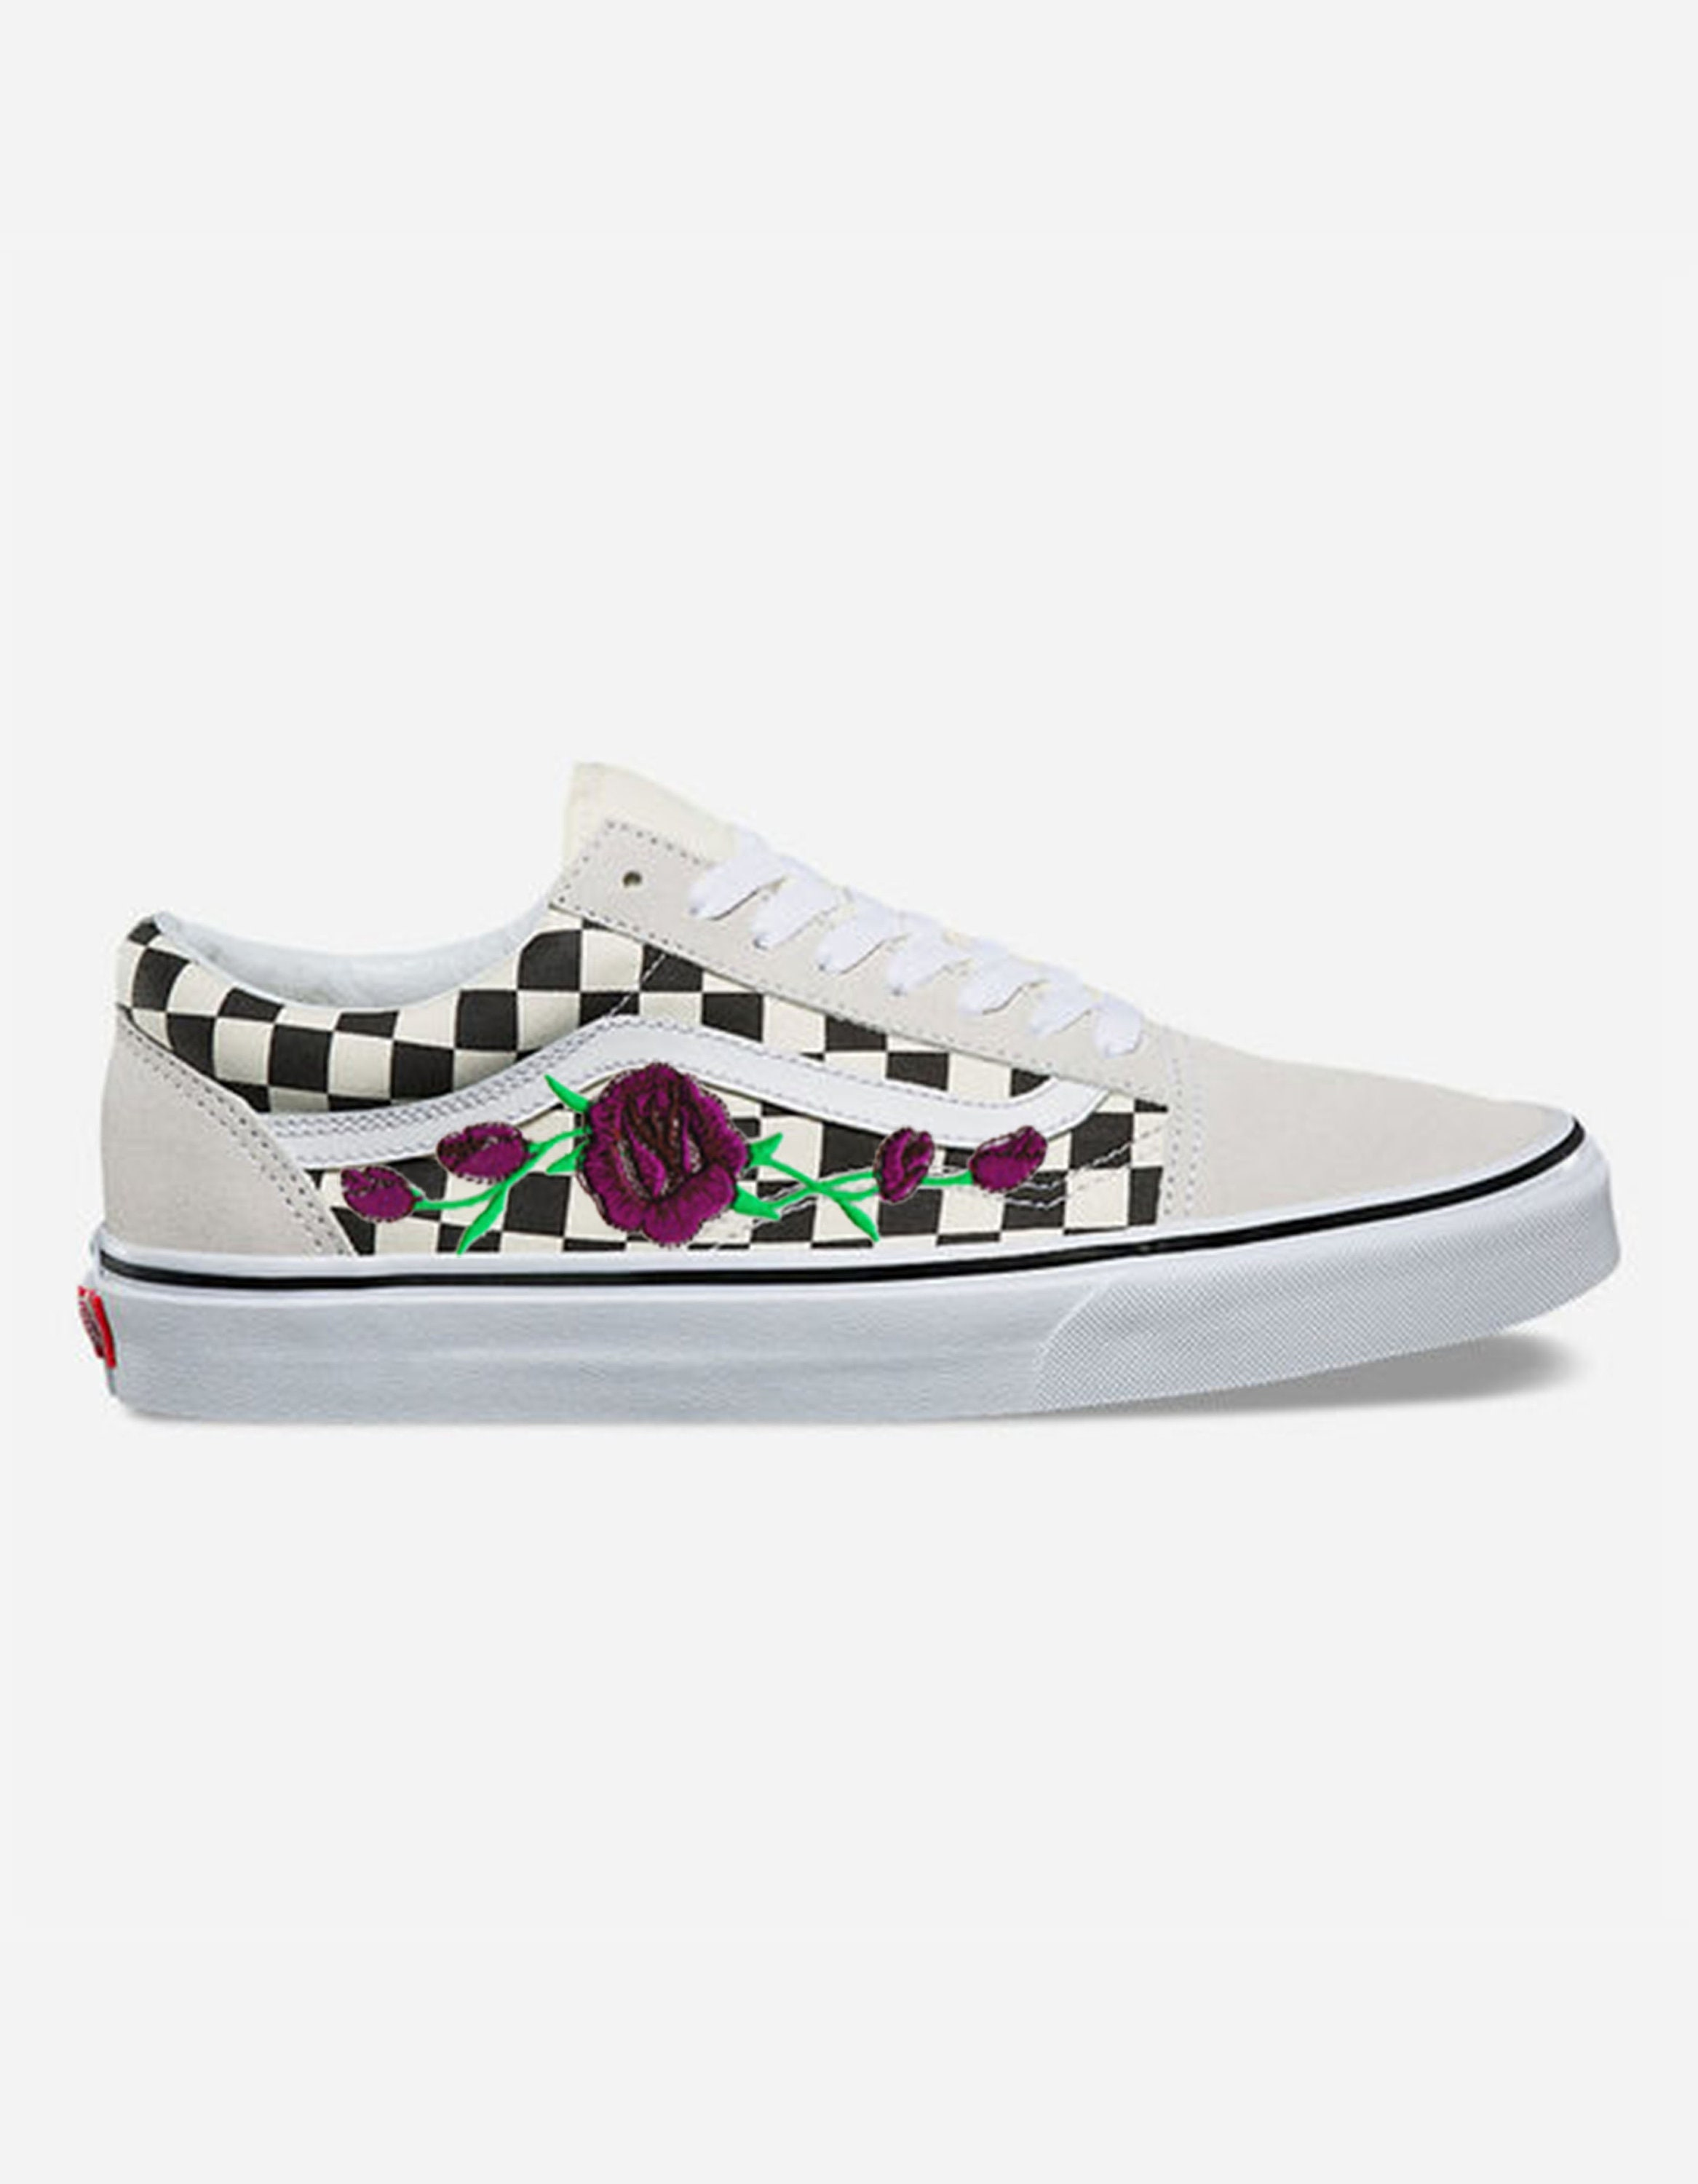 0f32d50789 Rose Buds Purple Custom Embroidered Vans White Checkered Old